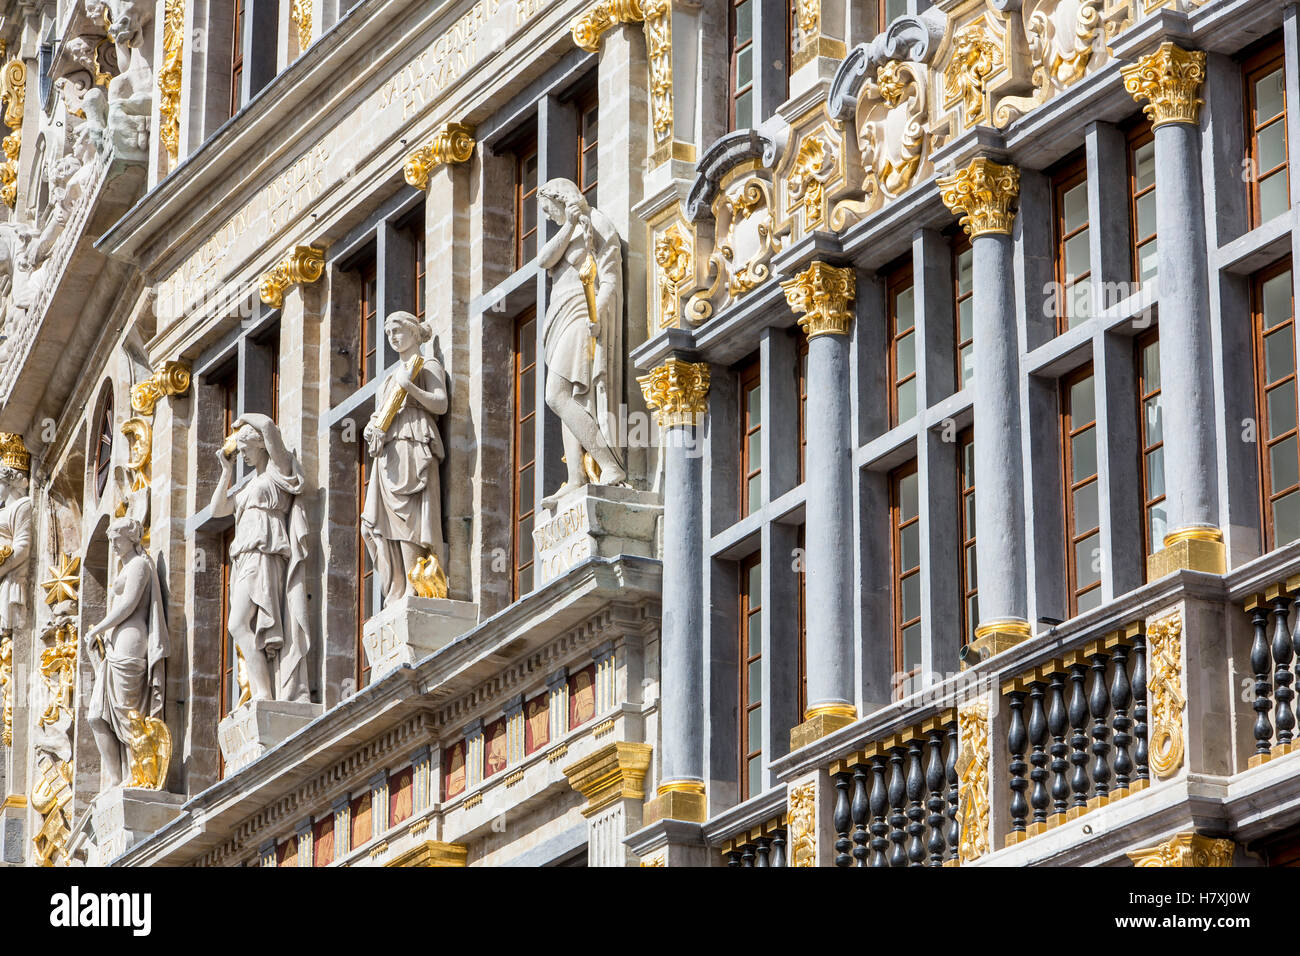 Facades of historic houses at the market square, Oude Markt, Grand Place, in the old town of Brussels, Belgium, - Stock Image